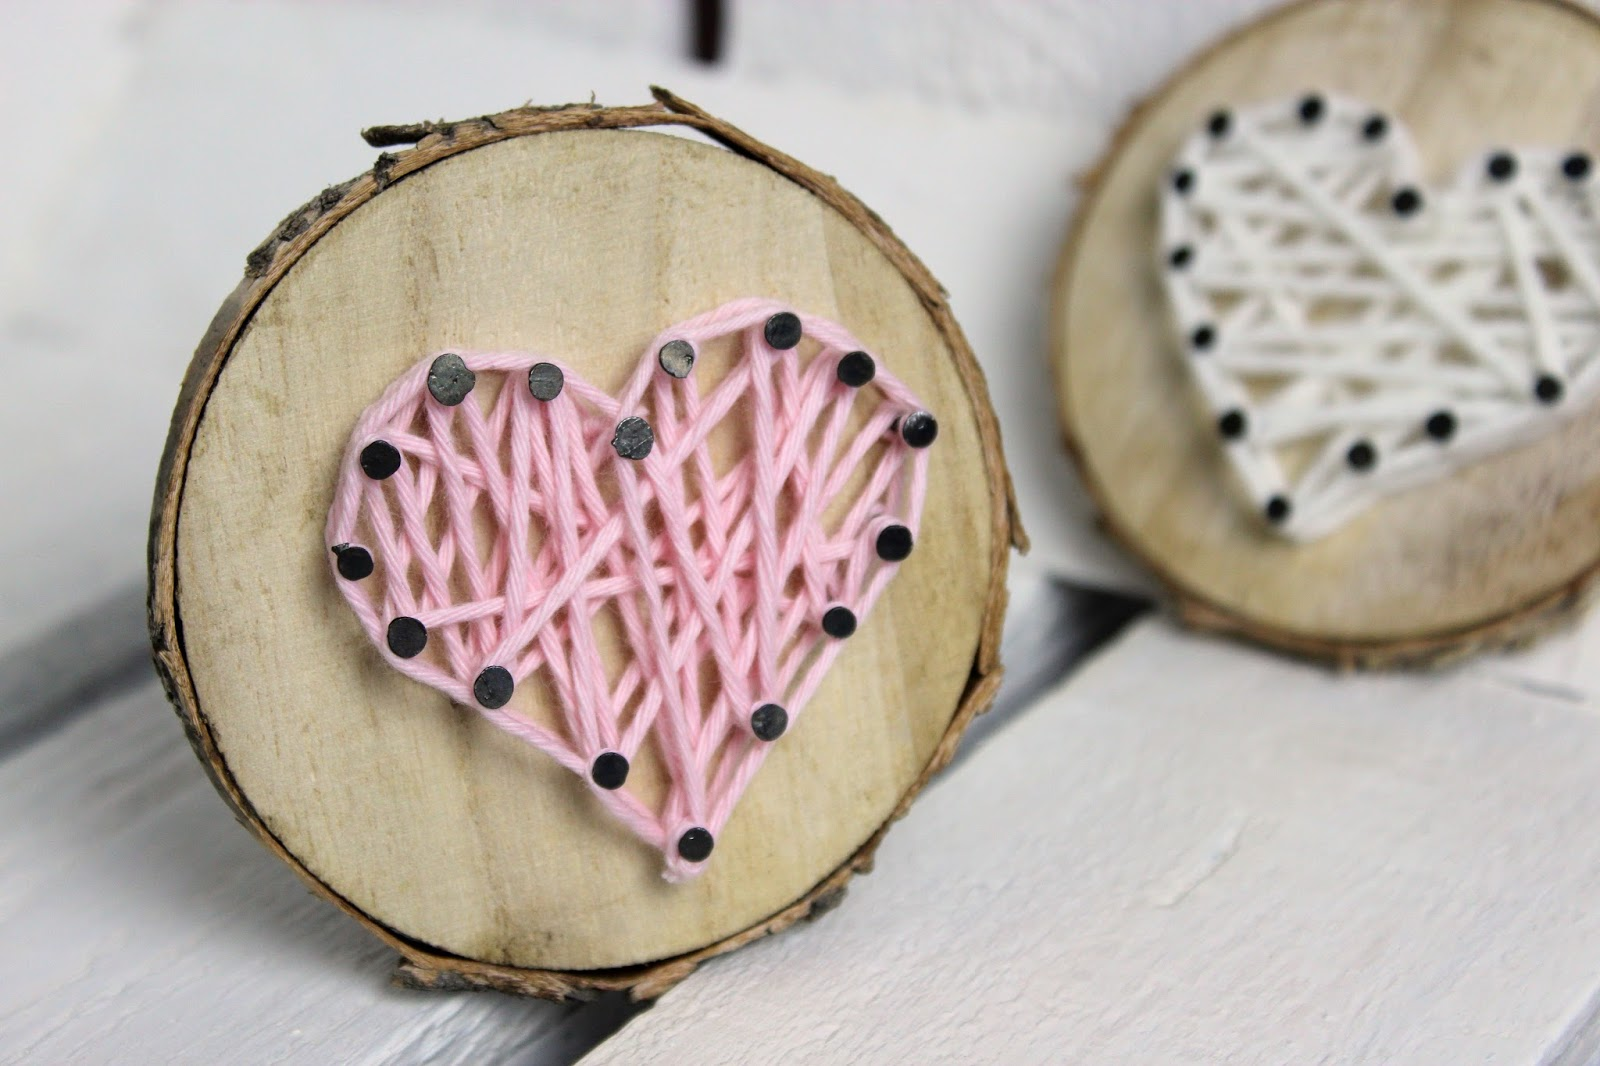 diy s es geschenk zum valentinstag baumscheibe mit herz in string art diycarinchen. Black Bedroom Furniture Sets. Home Design Ideas